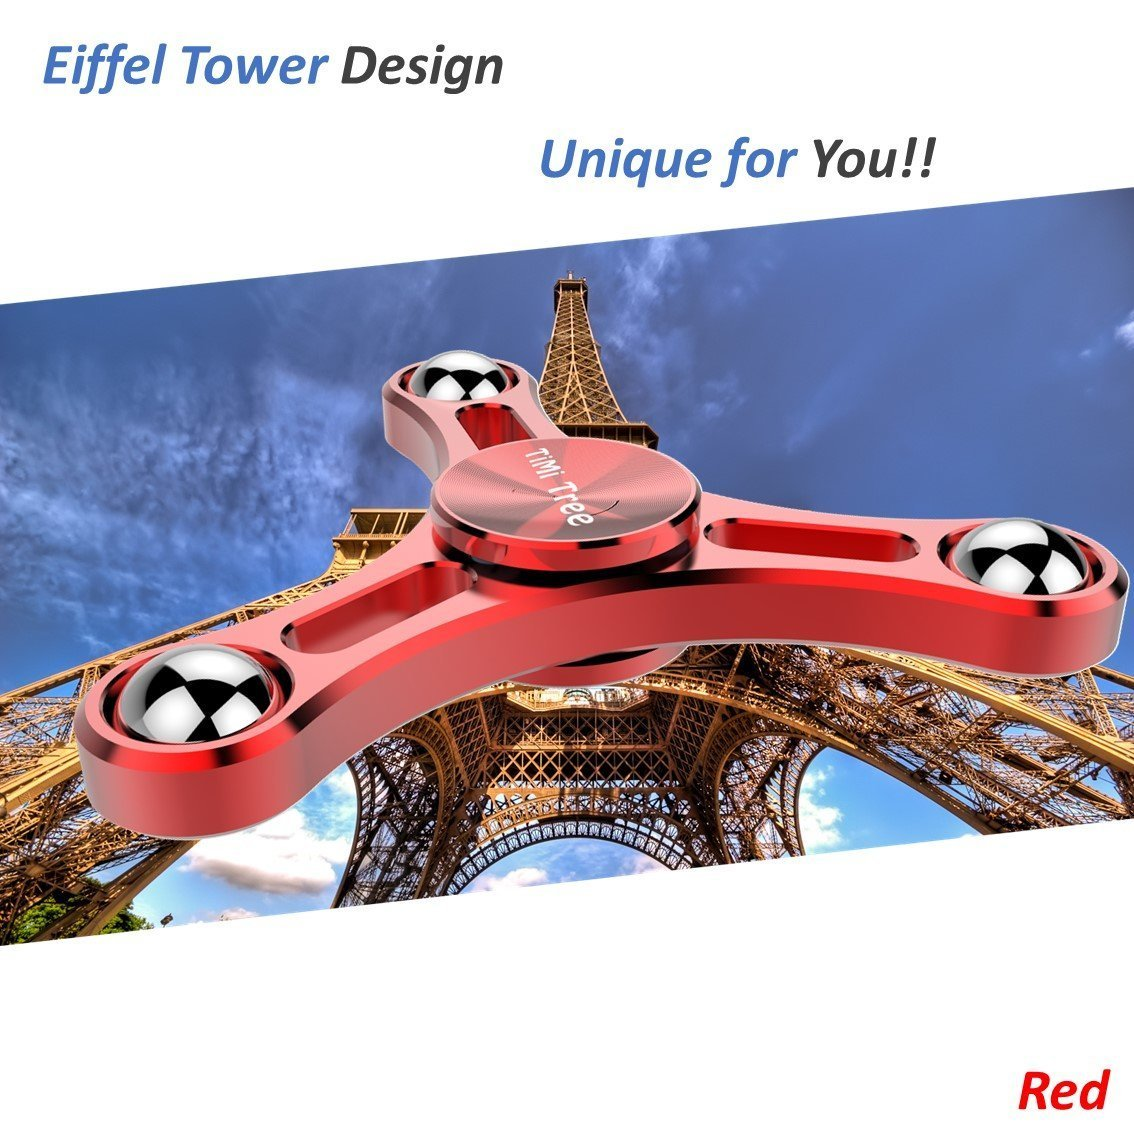 Fidget spinner metal easter gift cool toys under 10 dollars for fidget spinner metal easter gift cool toys under 10 dollars for teen boys novelty gifts flick tricks unique game for adults and 9 to 20 years old teen negle Choice Image